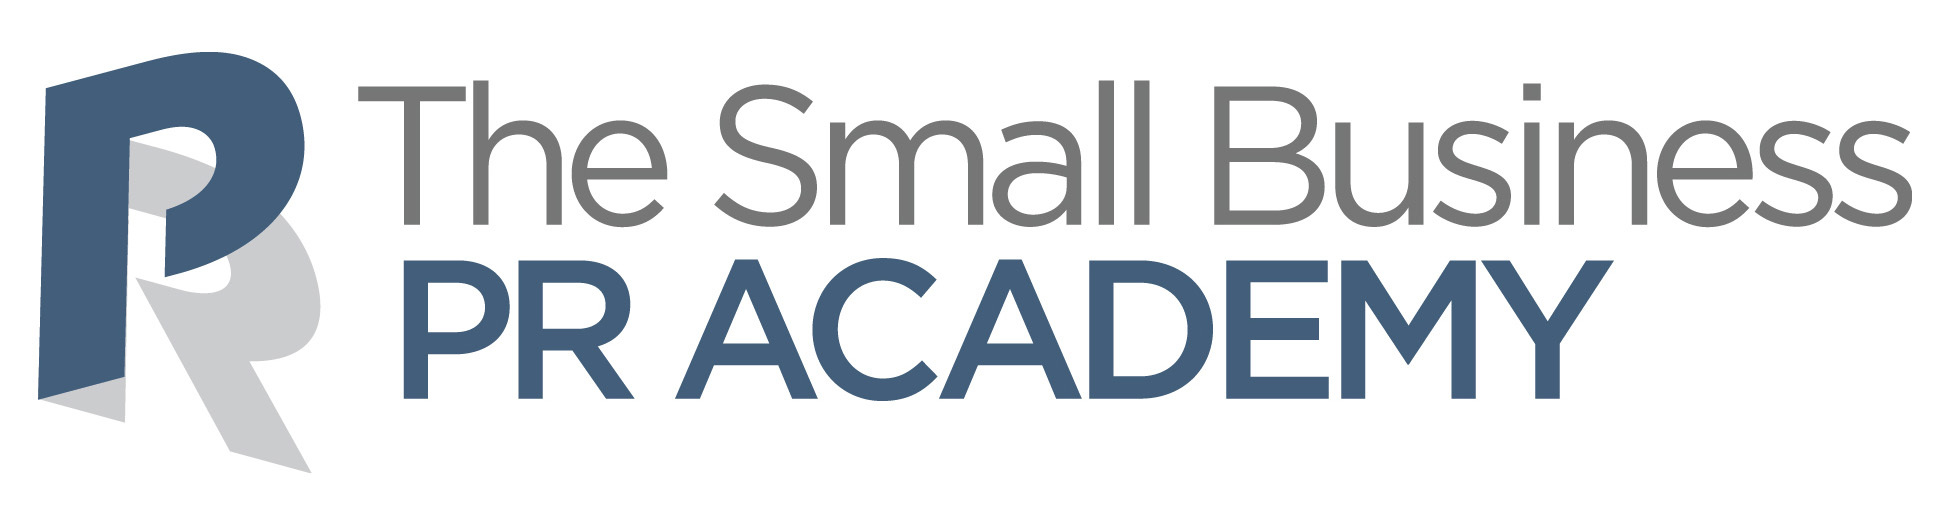 The Small Business PR Academy from Rembrandt Communications